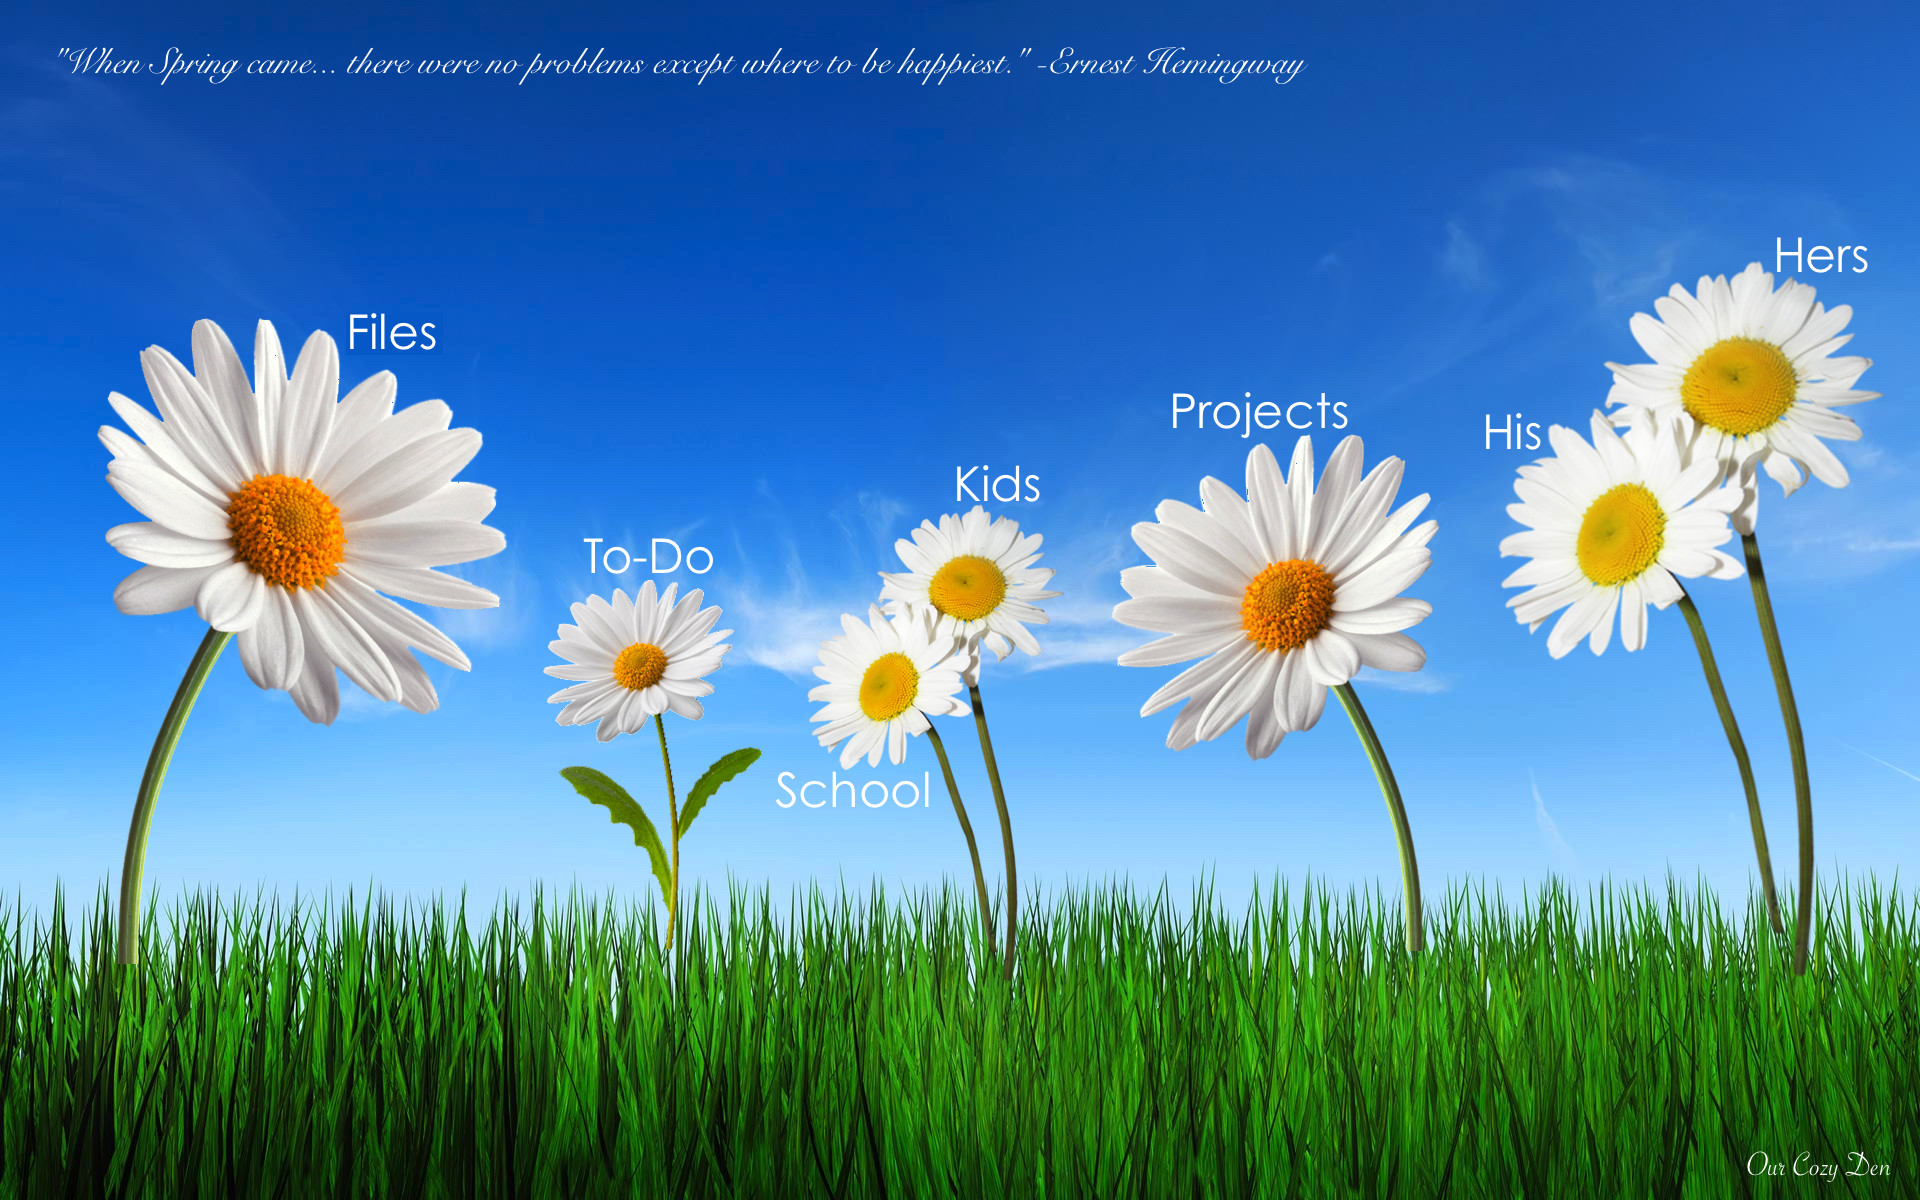 Click here to download the Spring Desktop Organizer for your own use!